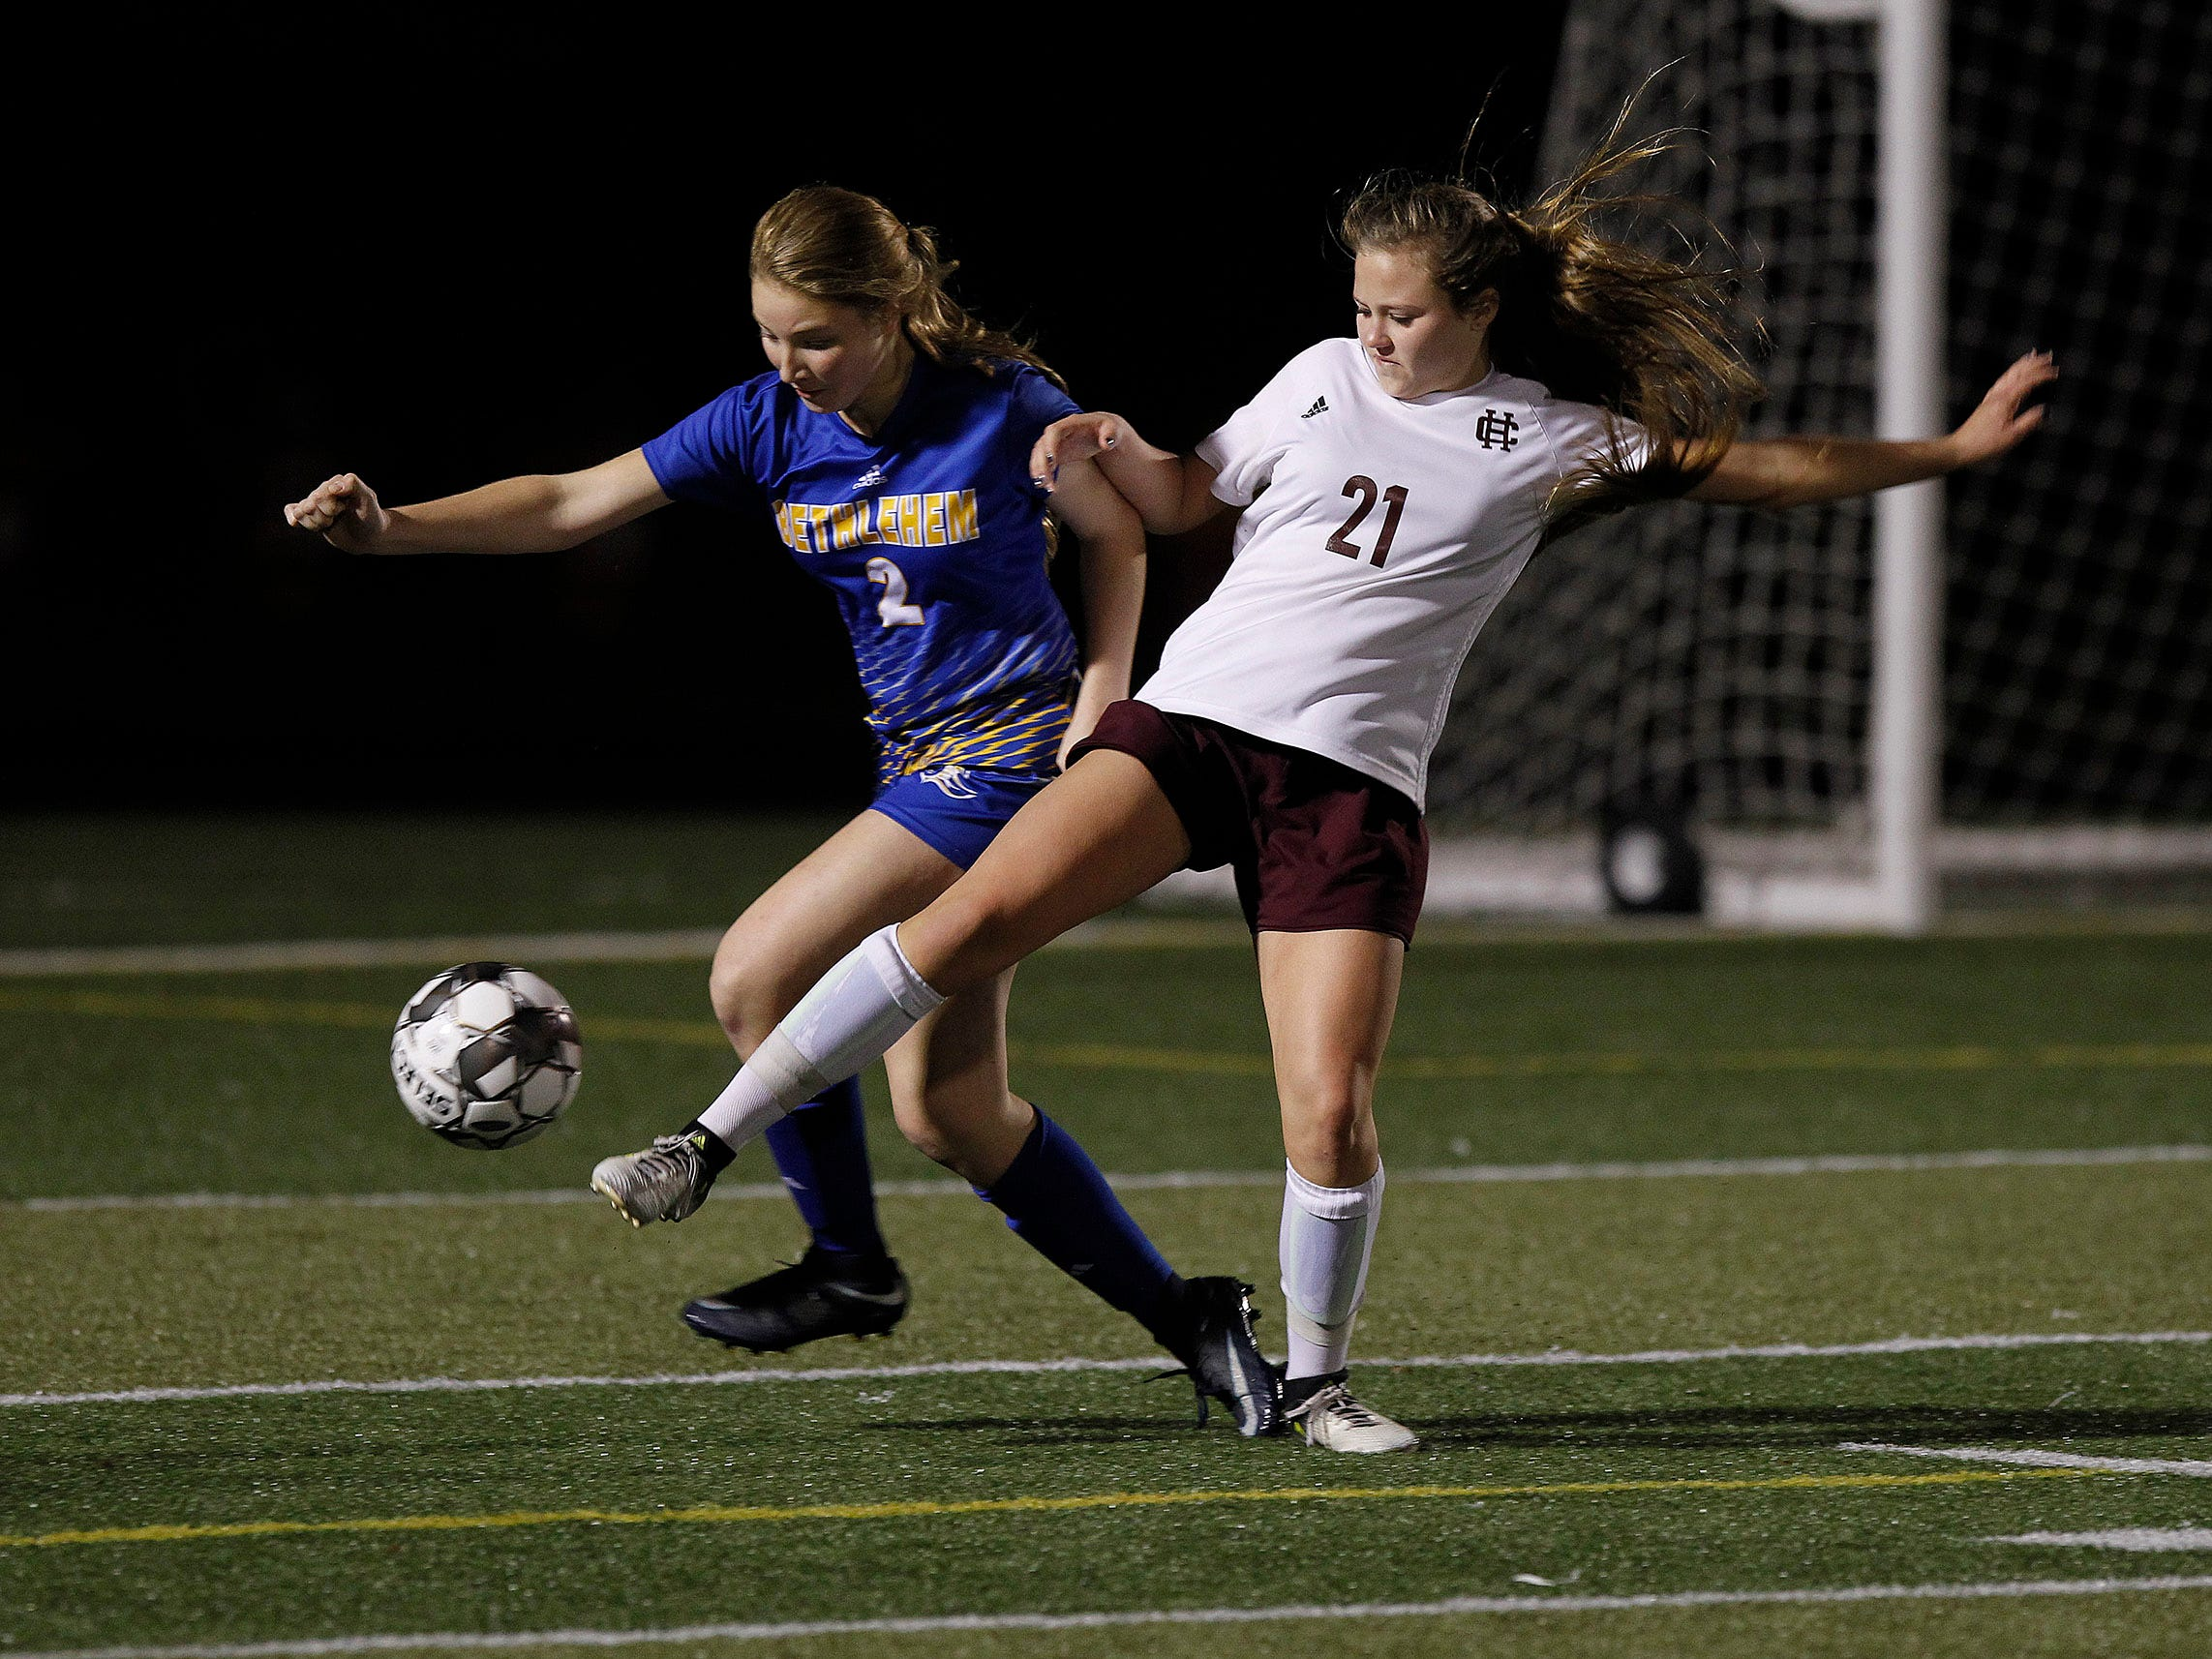 Henderson County's Cecilia Palummo defends against Bethlehem in the KHSAA state quarterfinals at Paul Laurence Dunbar in Lexington, Ky., Saturday night.